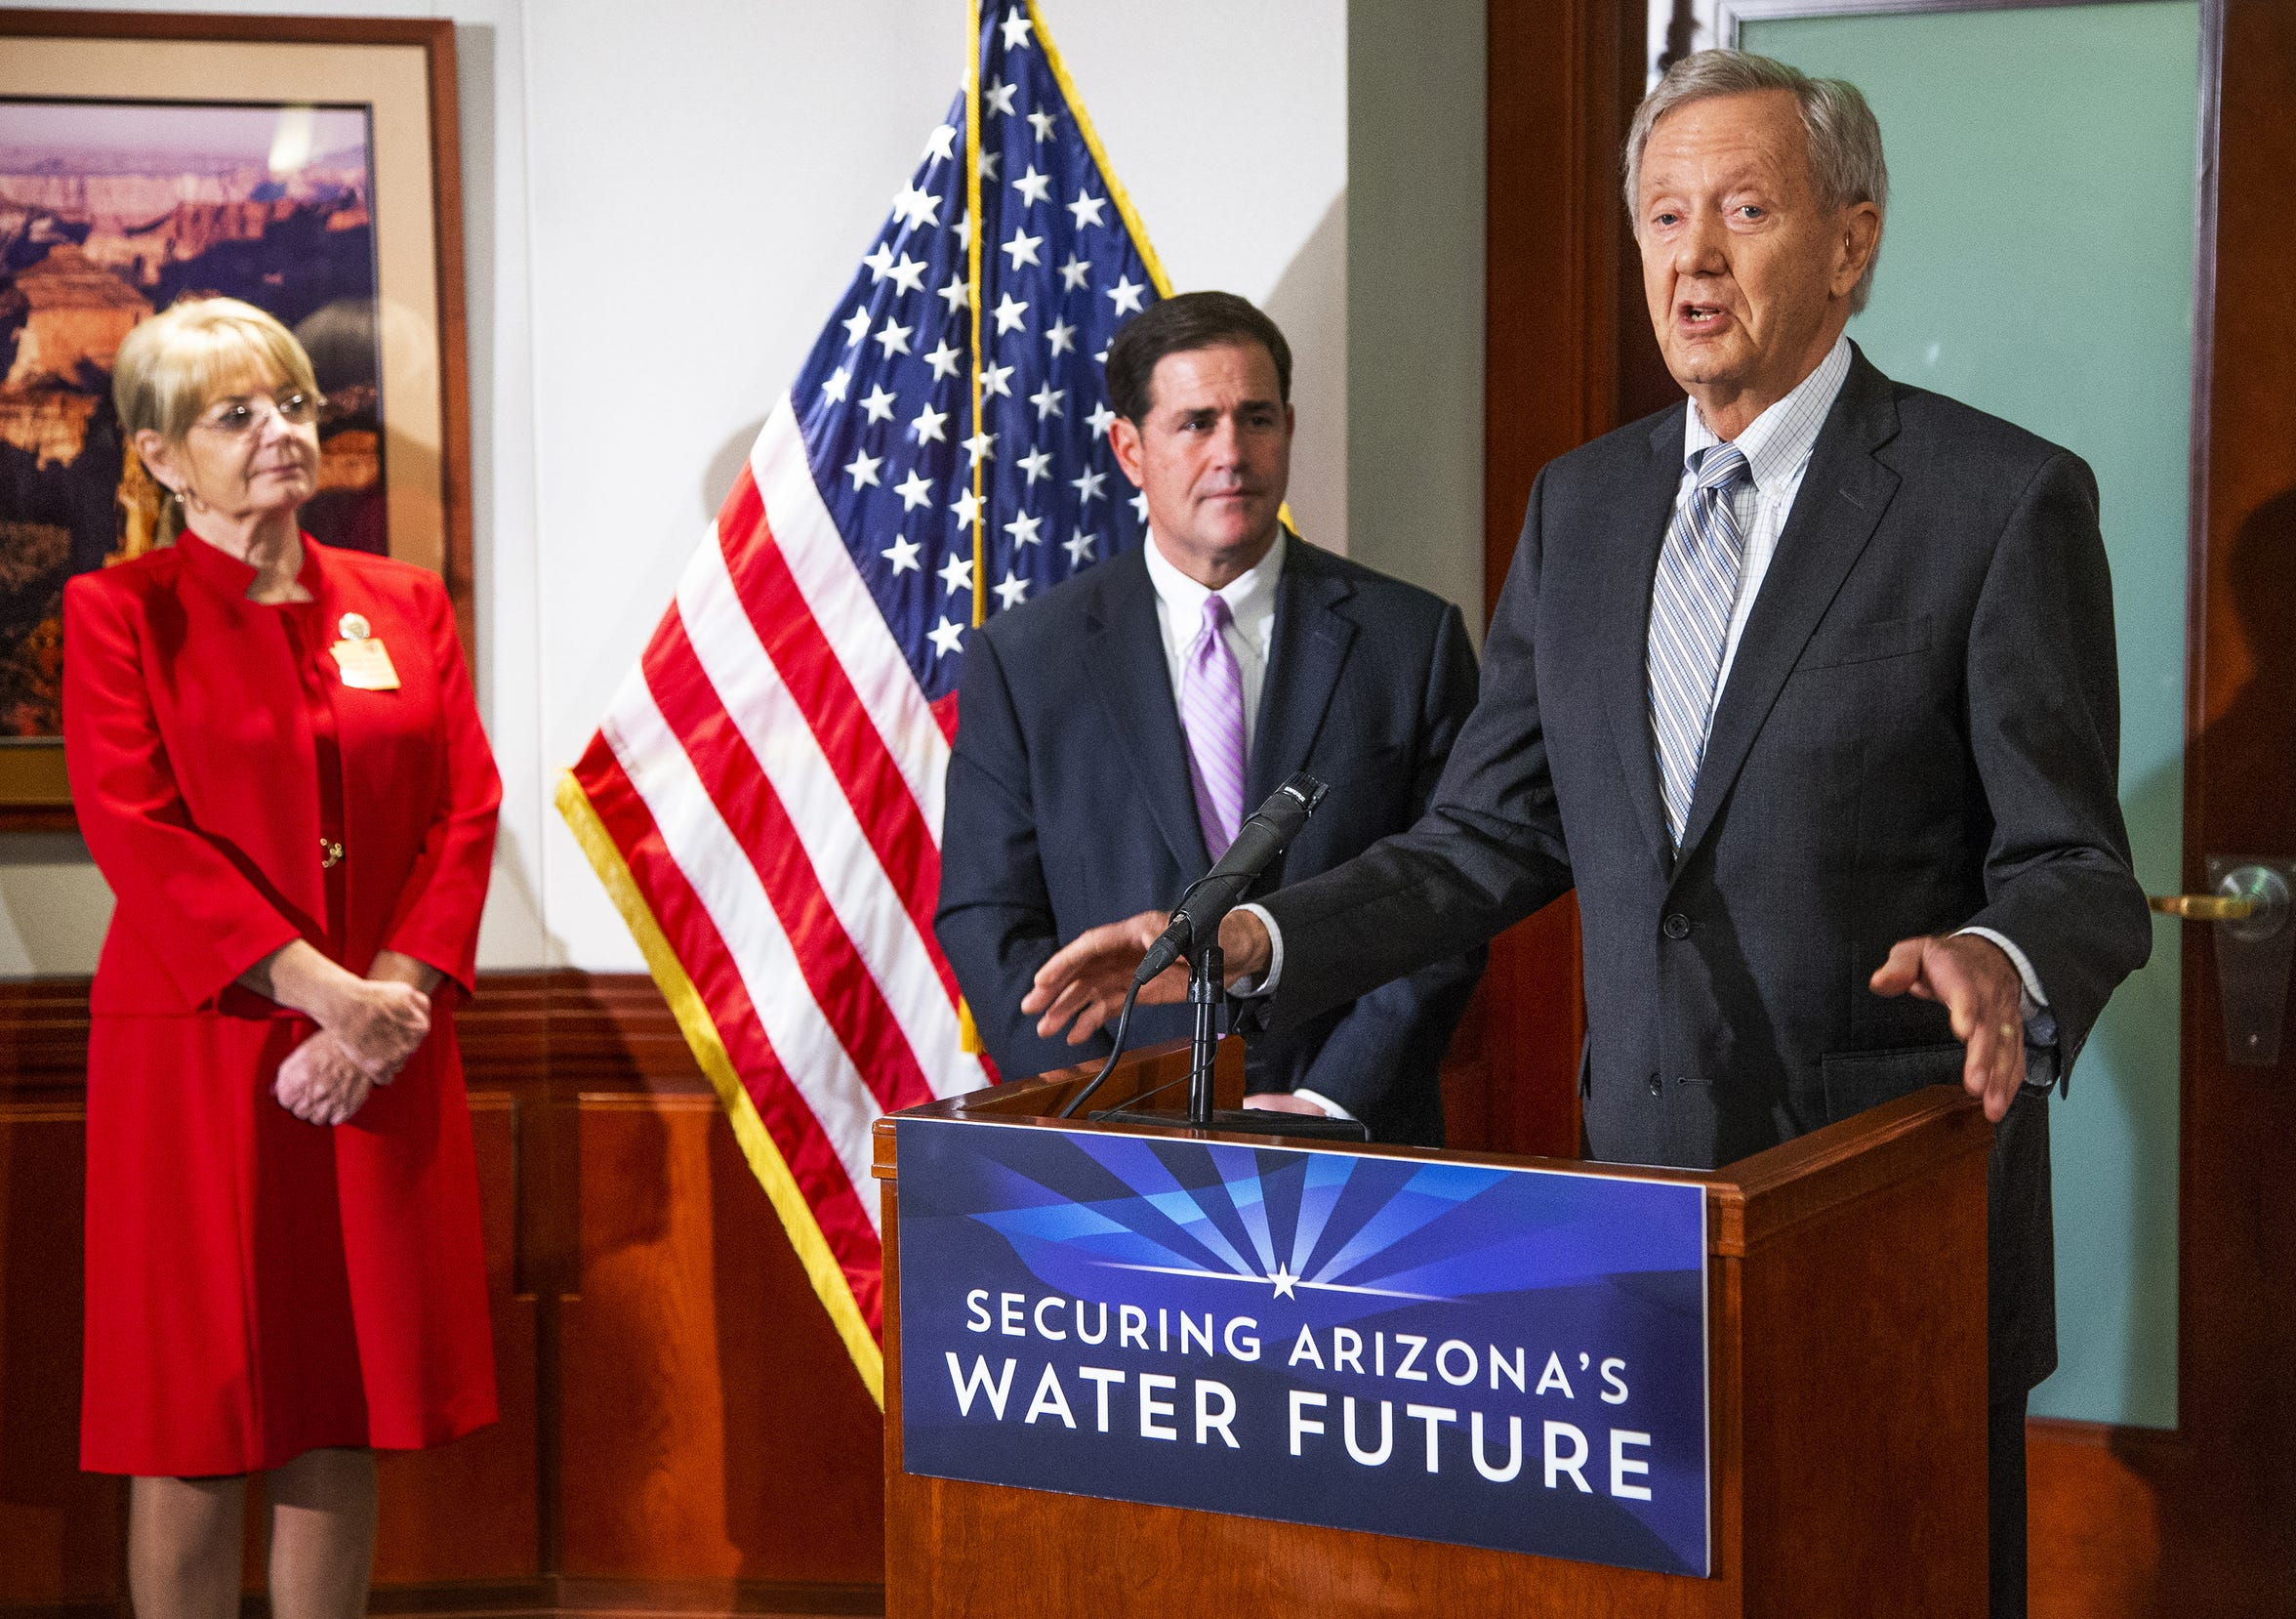 Former Arizona Gov. Bruce Babbitt (right) speaks at a press conference at the Arizona Capitol with government leaders to discuss water use, Jan. 15, 2019. Senate President Karen Fann (far left) and Gov. Doug Ducey also attended.